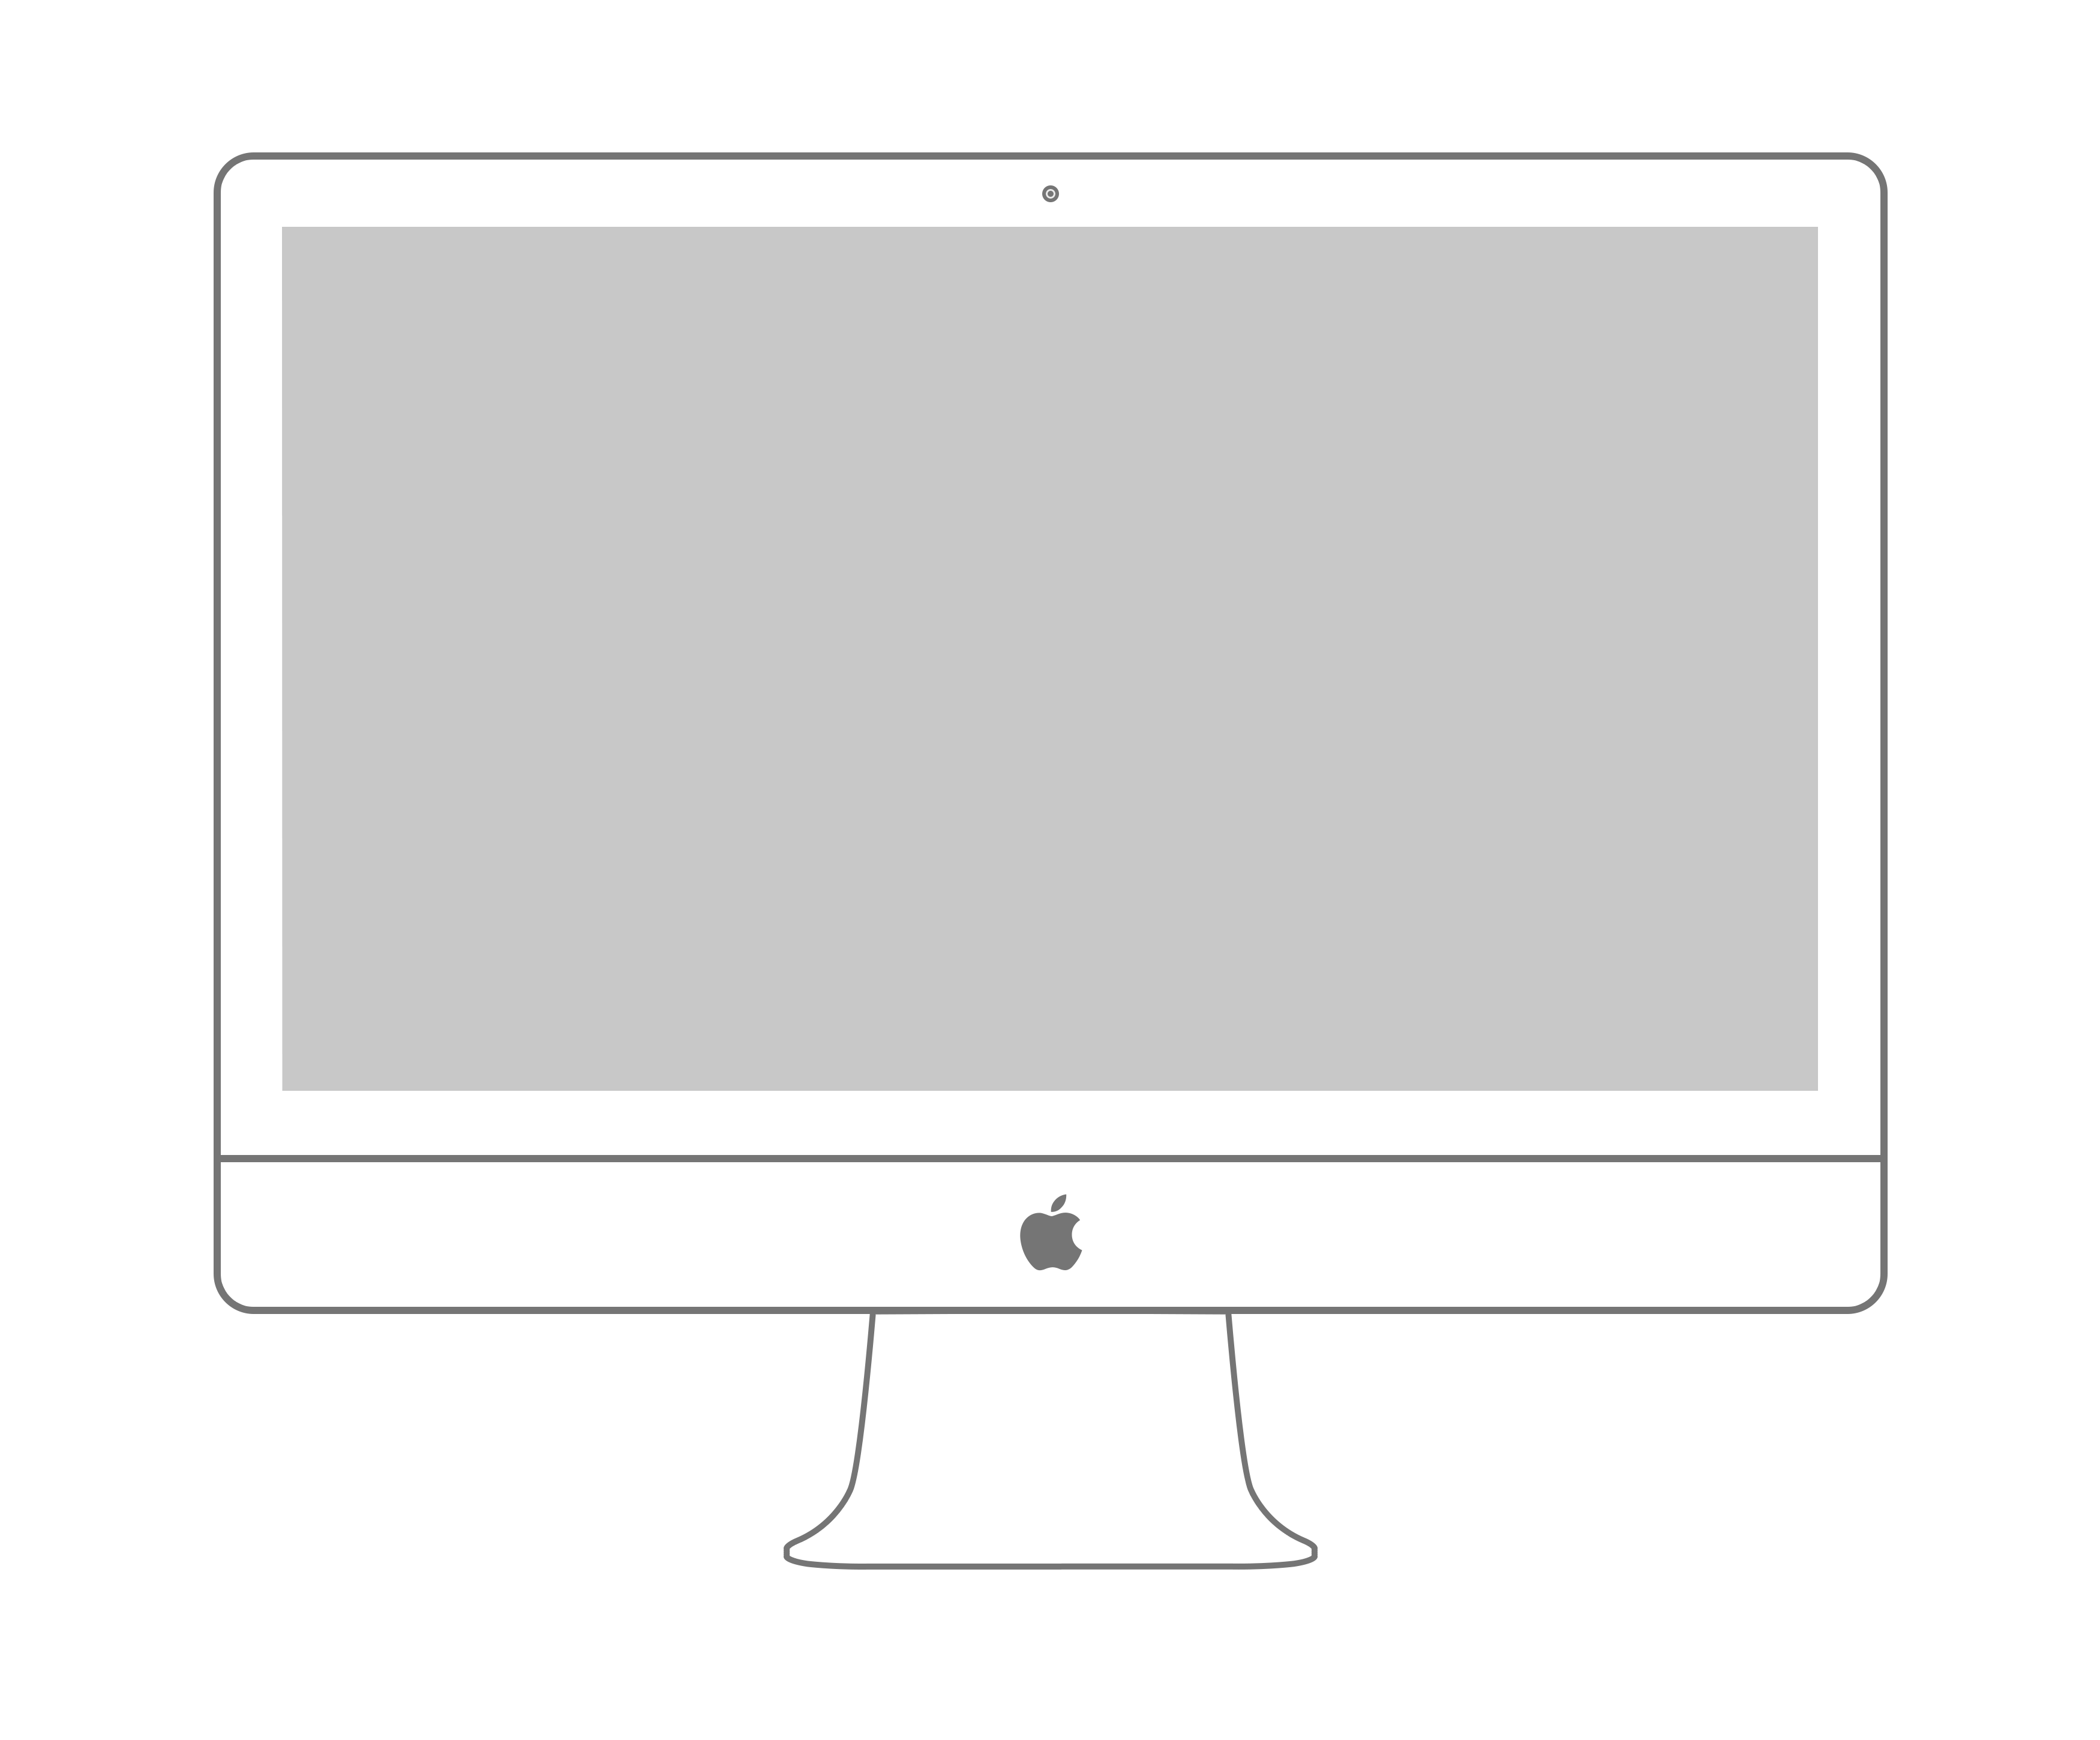 imac outline - photo #16